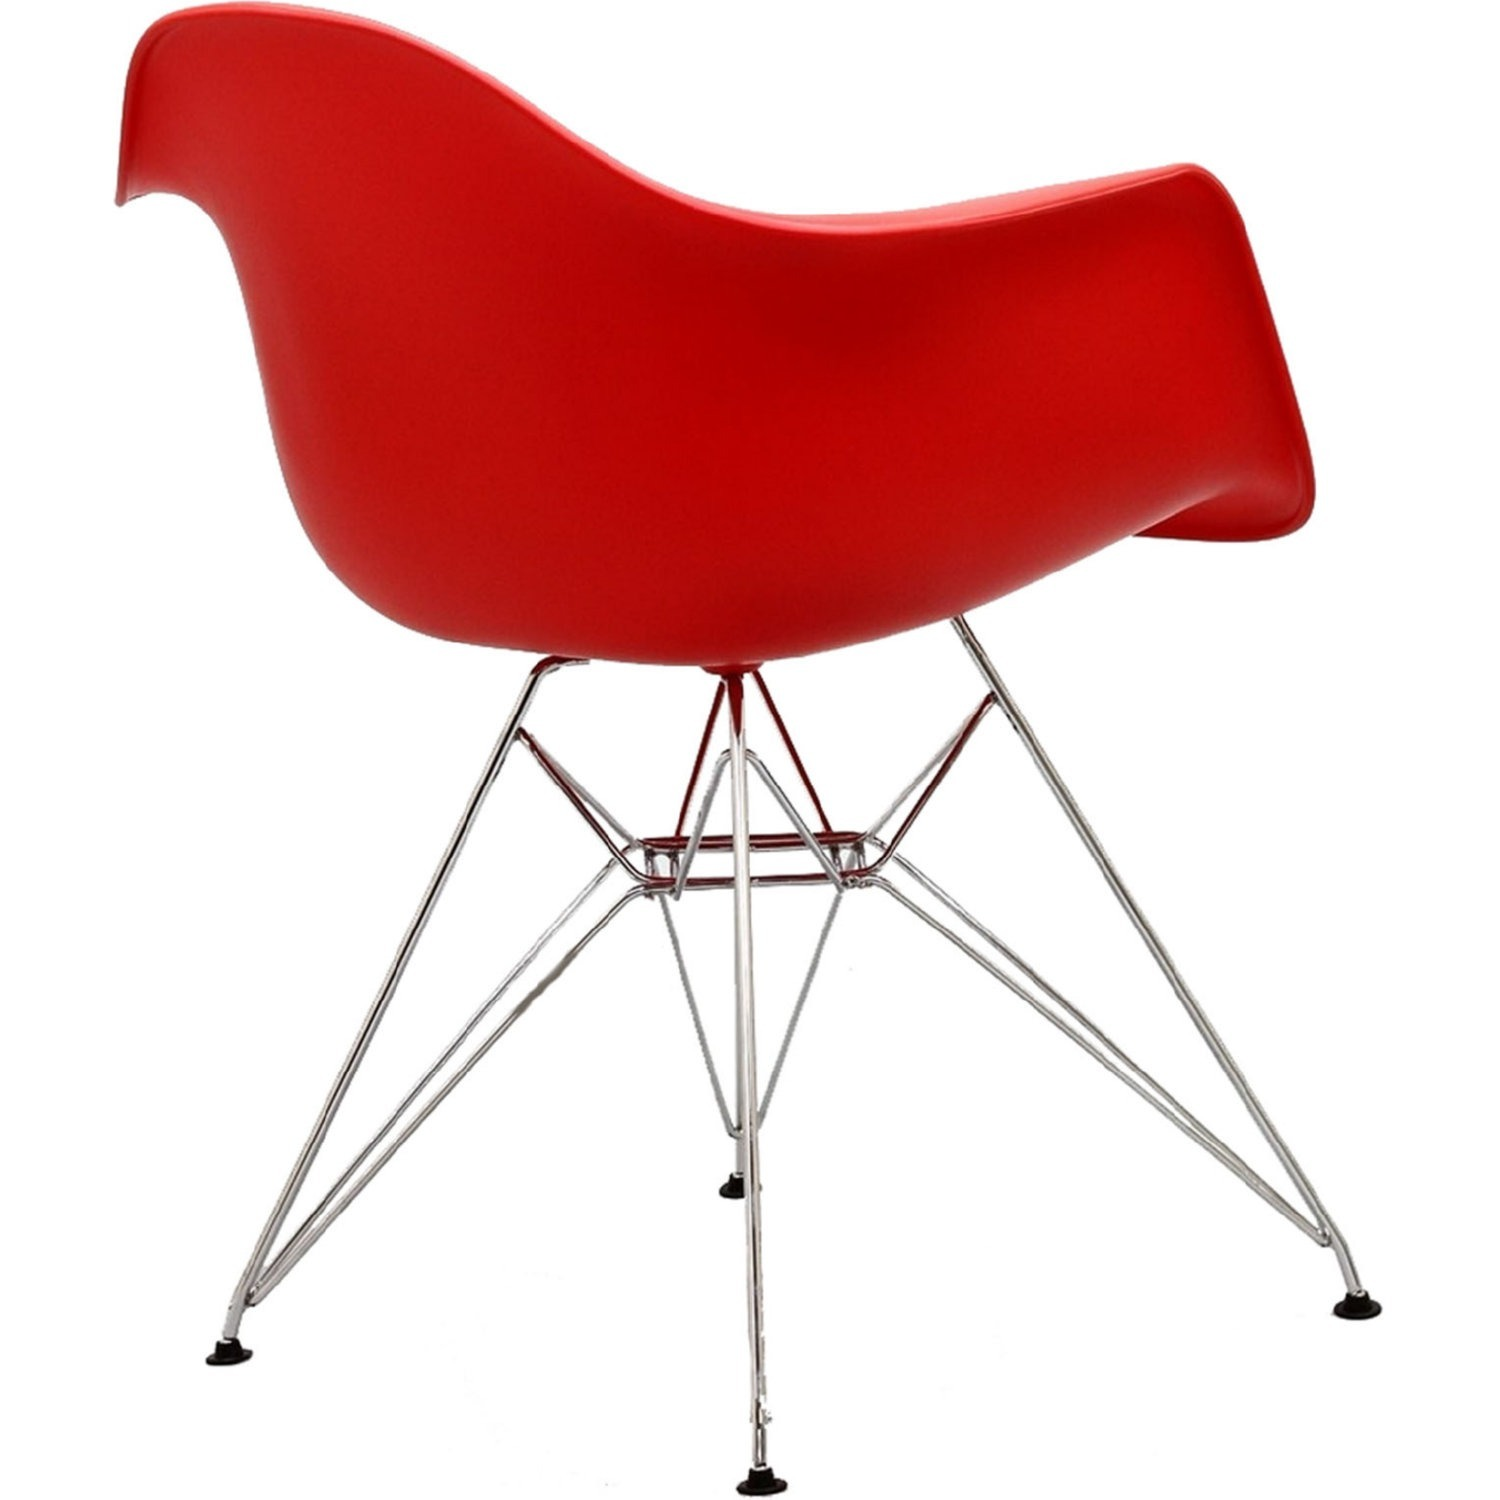 Modern Dining Chair In Red Finish W/ Steel Base - image-3